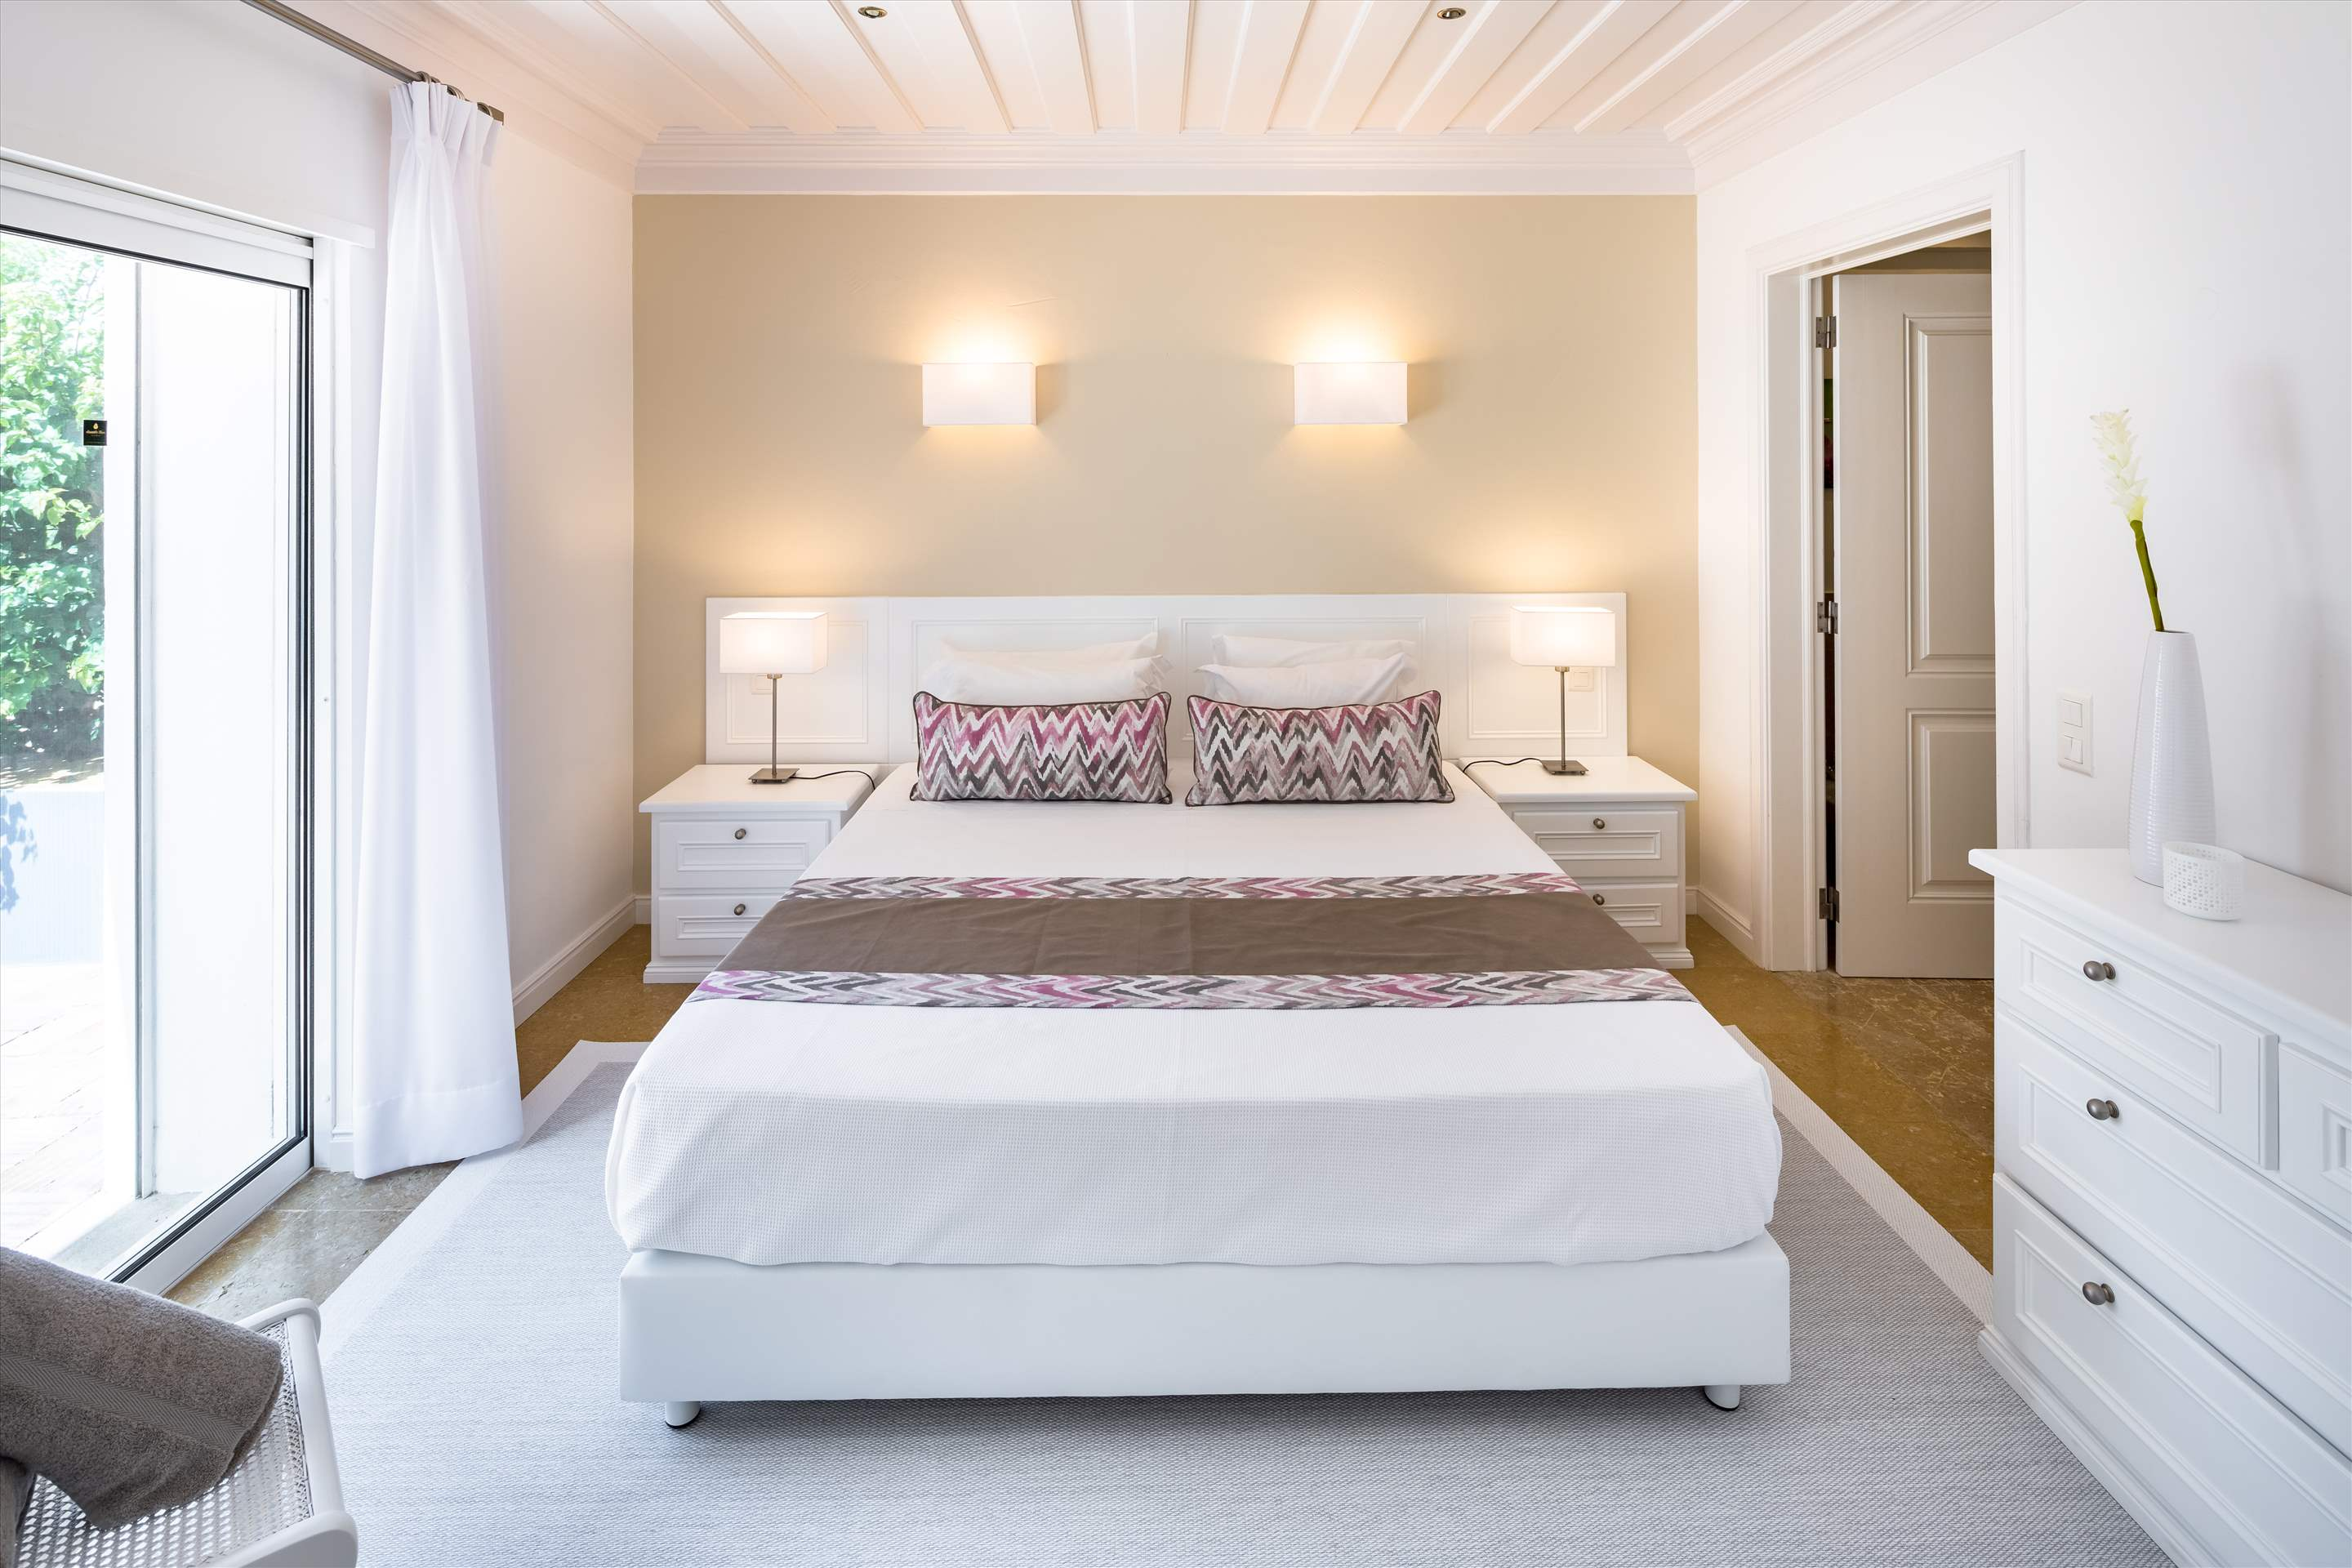 Casa da Montanha, 13-14 persons, 8 bedroom villa in Vilamoura Area, Algarve Photo #21